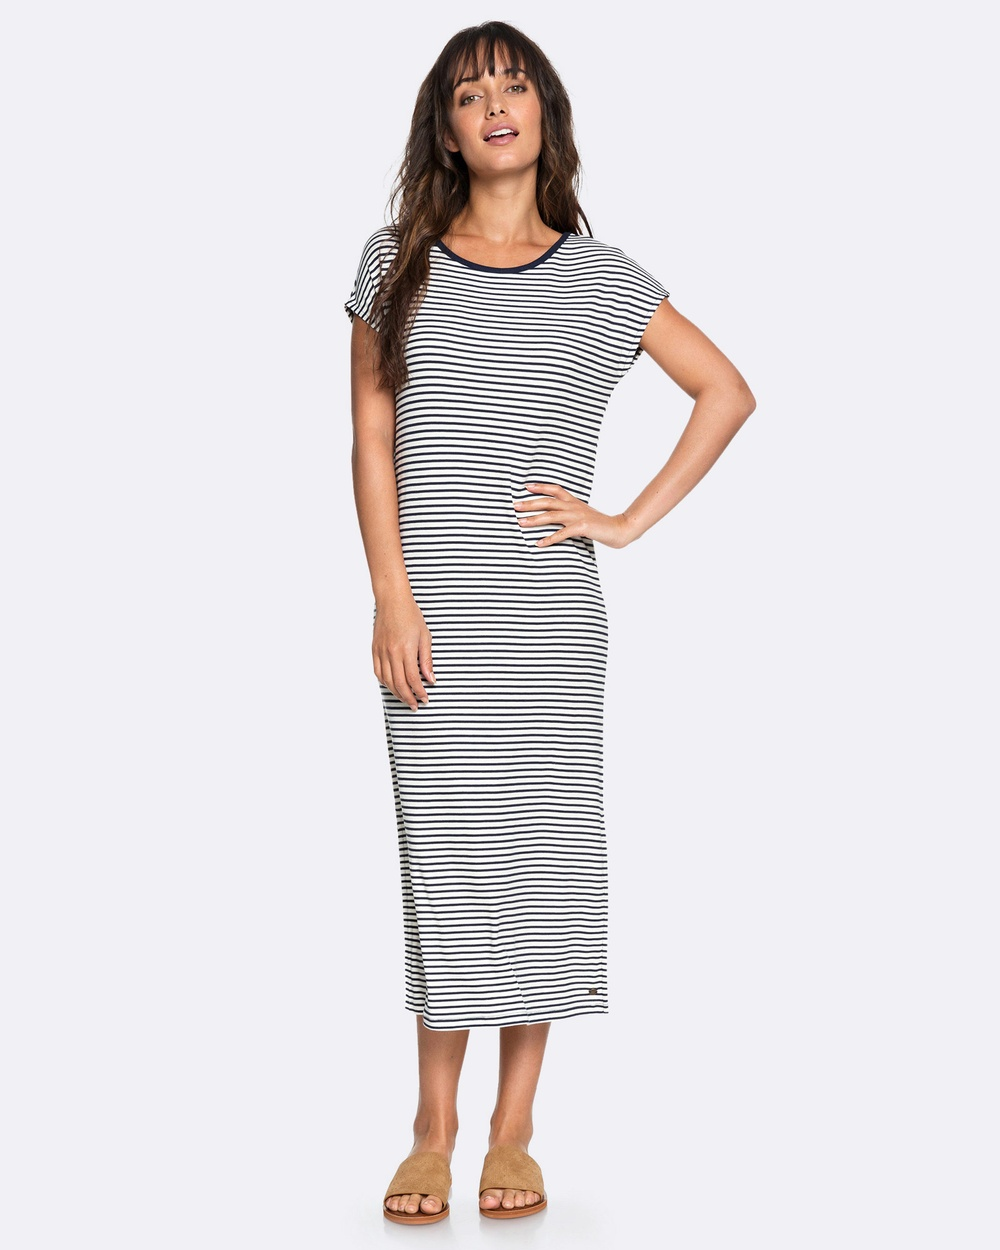 Roxy Womens Make It New Thin Stripe Maxi Tee Dress Swimwear MARSHMALLOW THIN STR Womens Make It New Thin Stripe Maxi Tee Dress